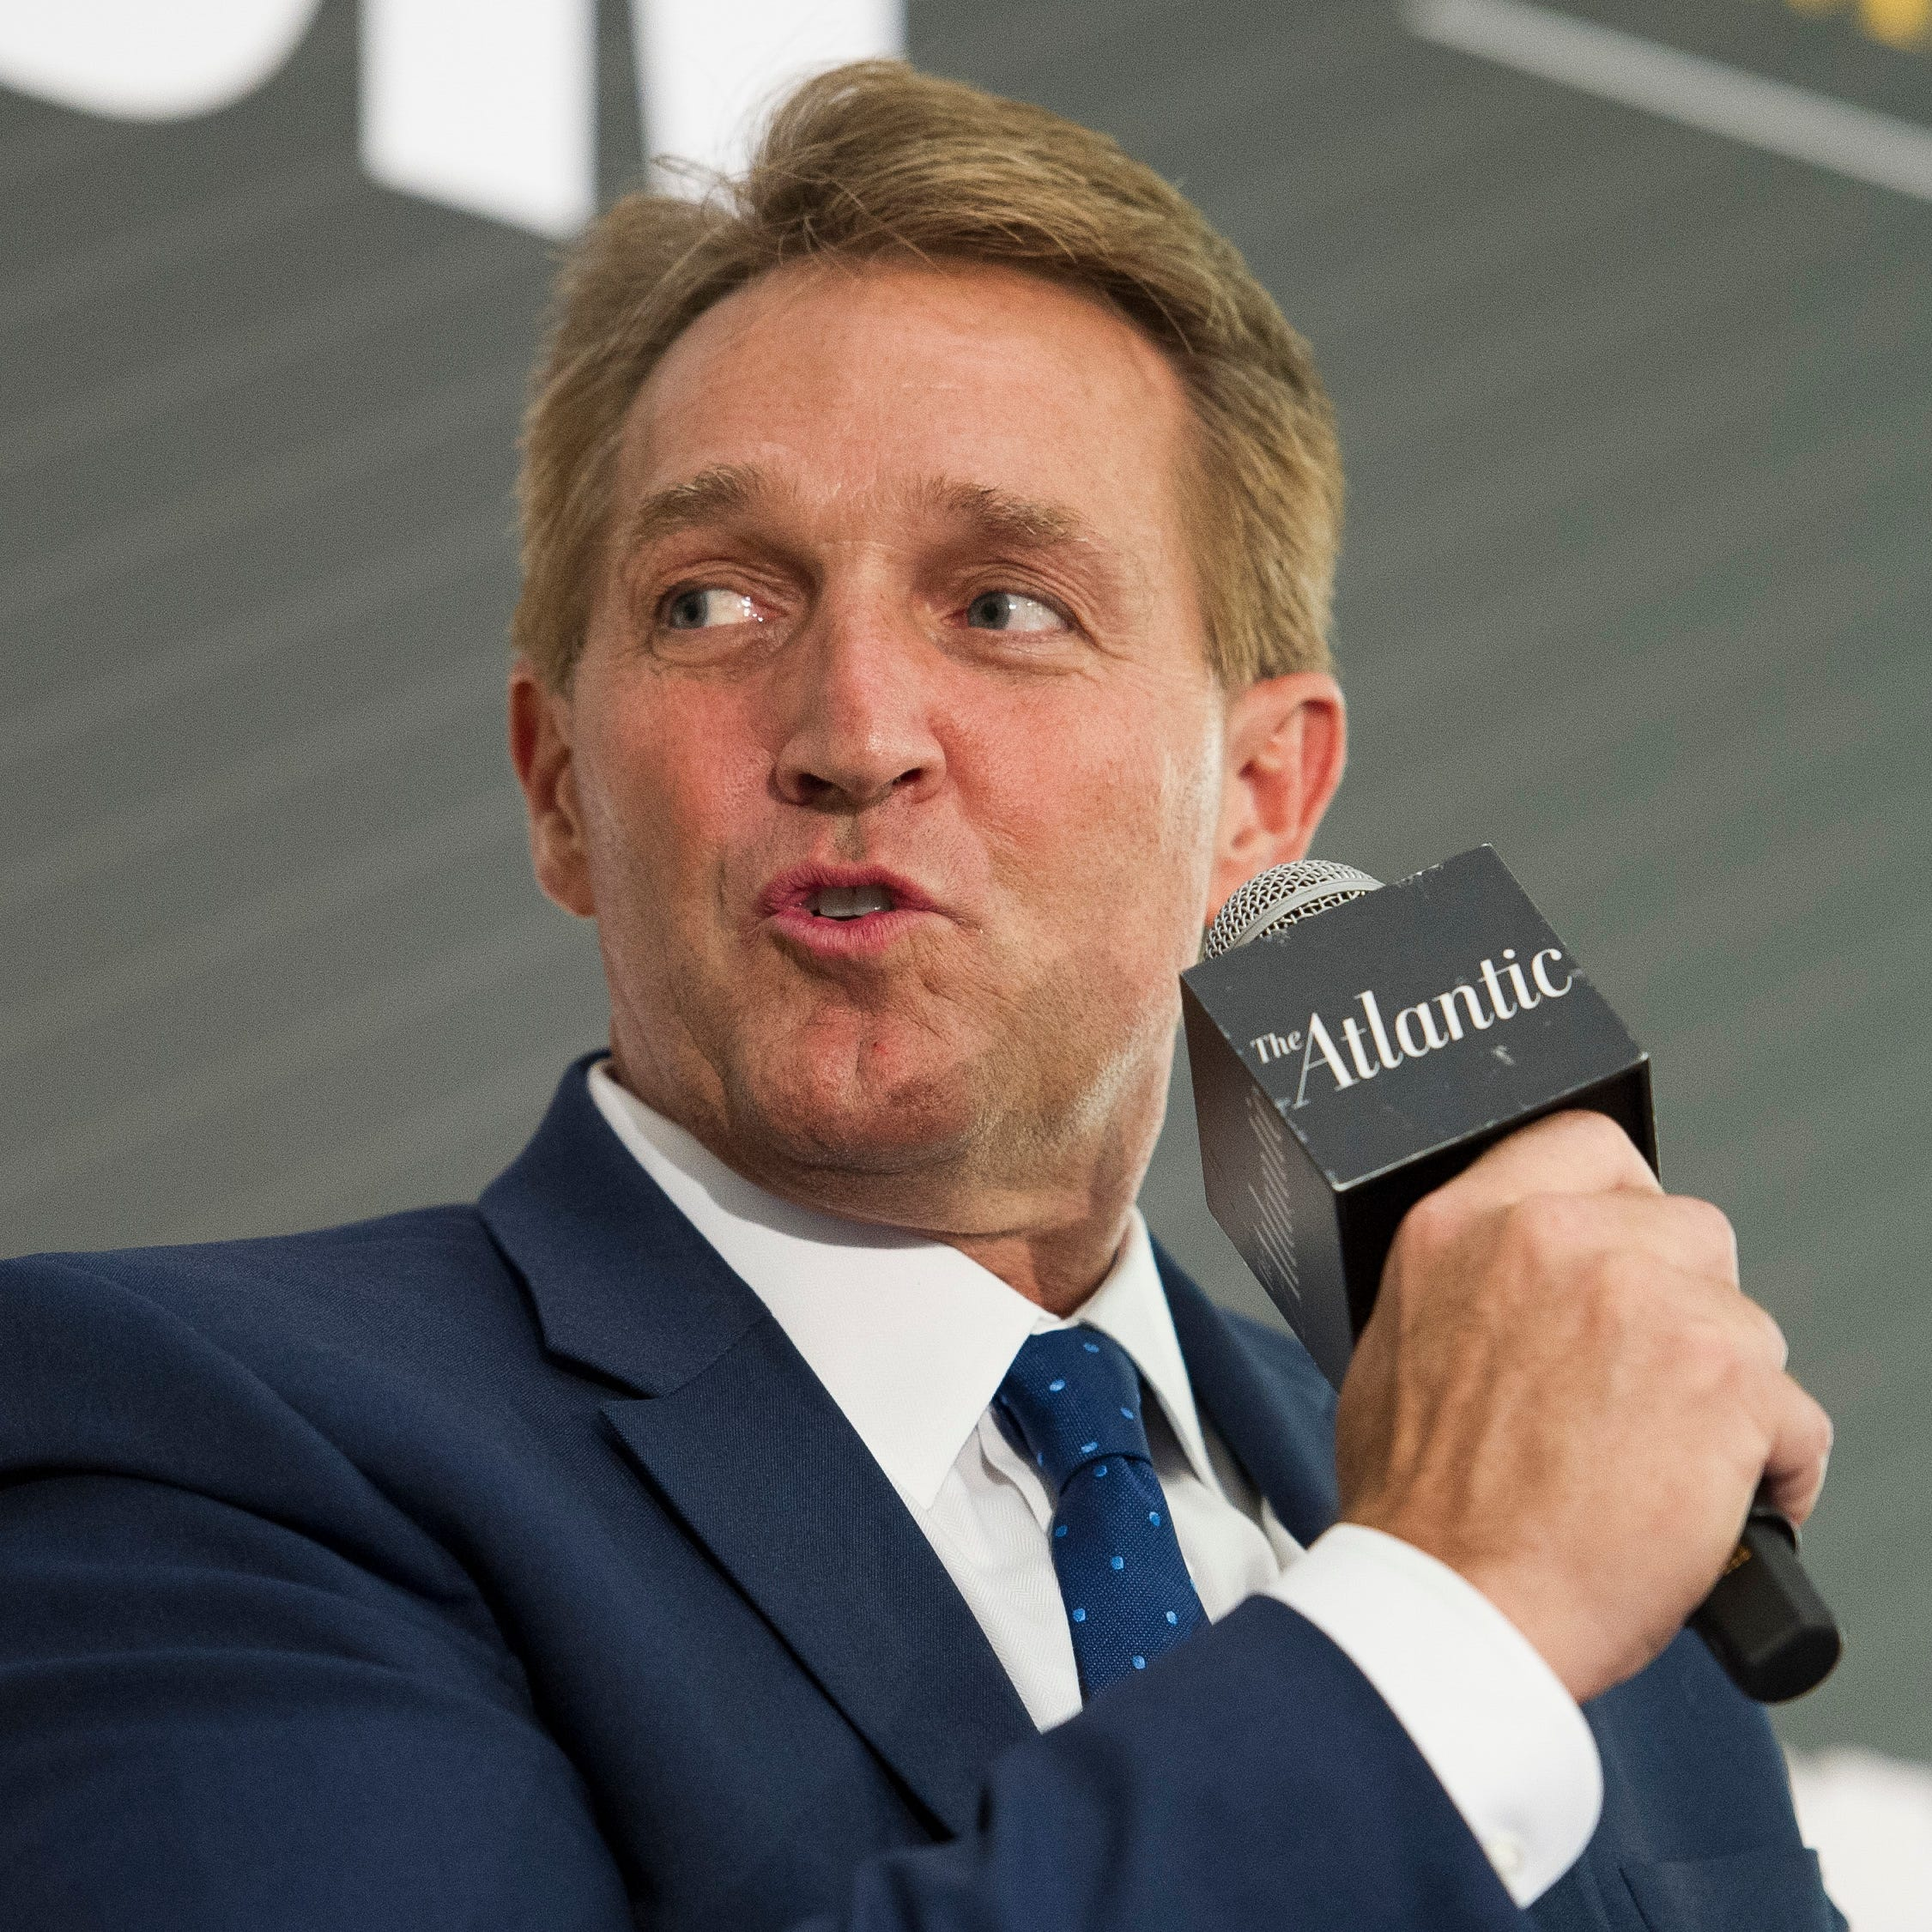 Jeff Flake calls out Donald Trump, but he likes the president's policies